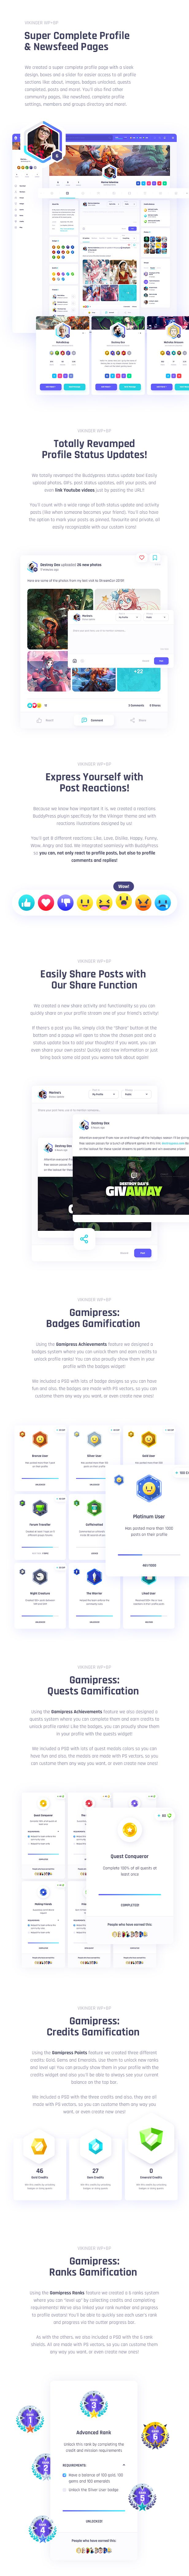 Vikinger - BuddyPress and GamiPress Social Community - 12